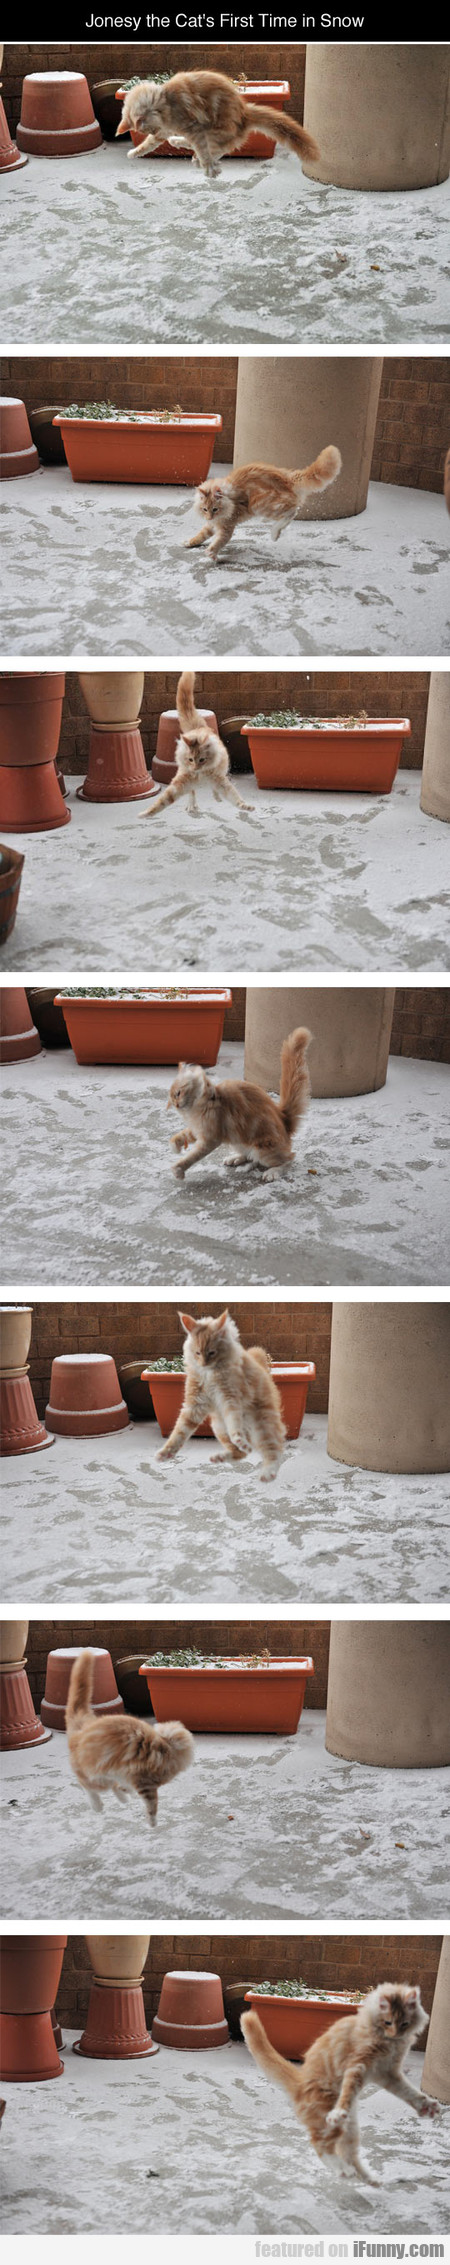 Jonesy The Cat's First Time In Snow